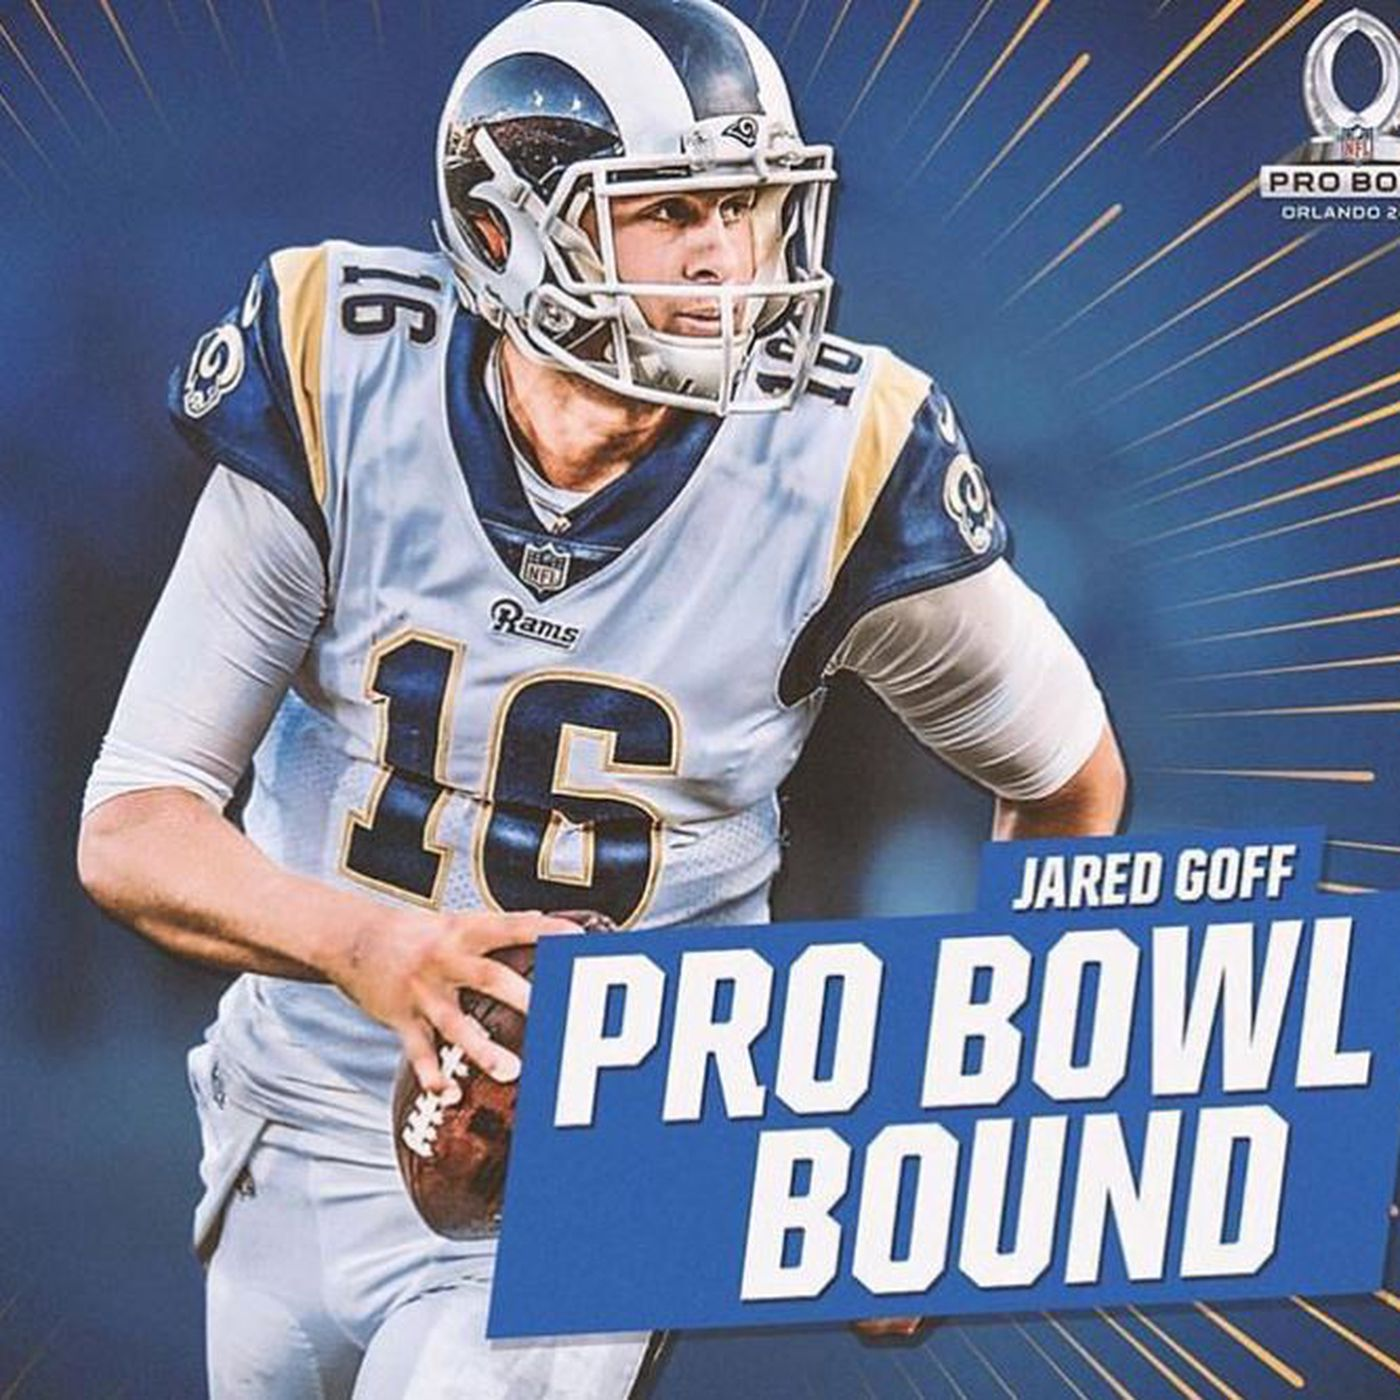 huge selection of 5e466 5ace6 Los Angeles Rams QB Jared Goff selected for Pro Bowl - Turf ...